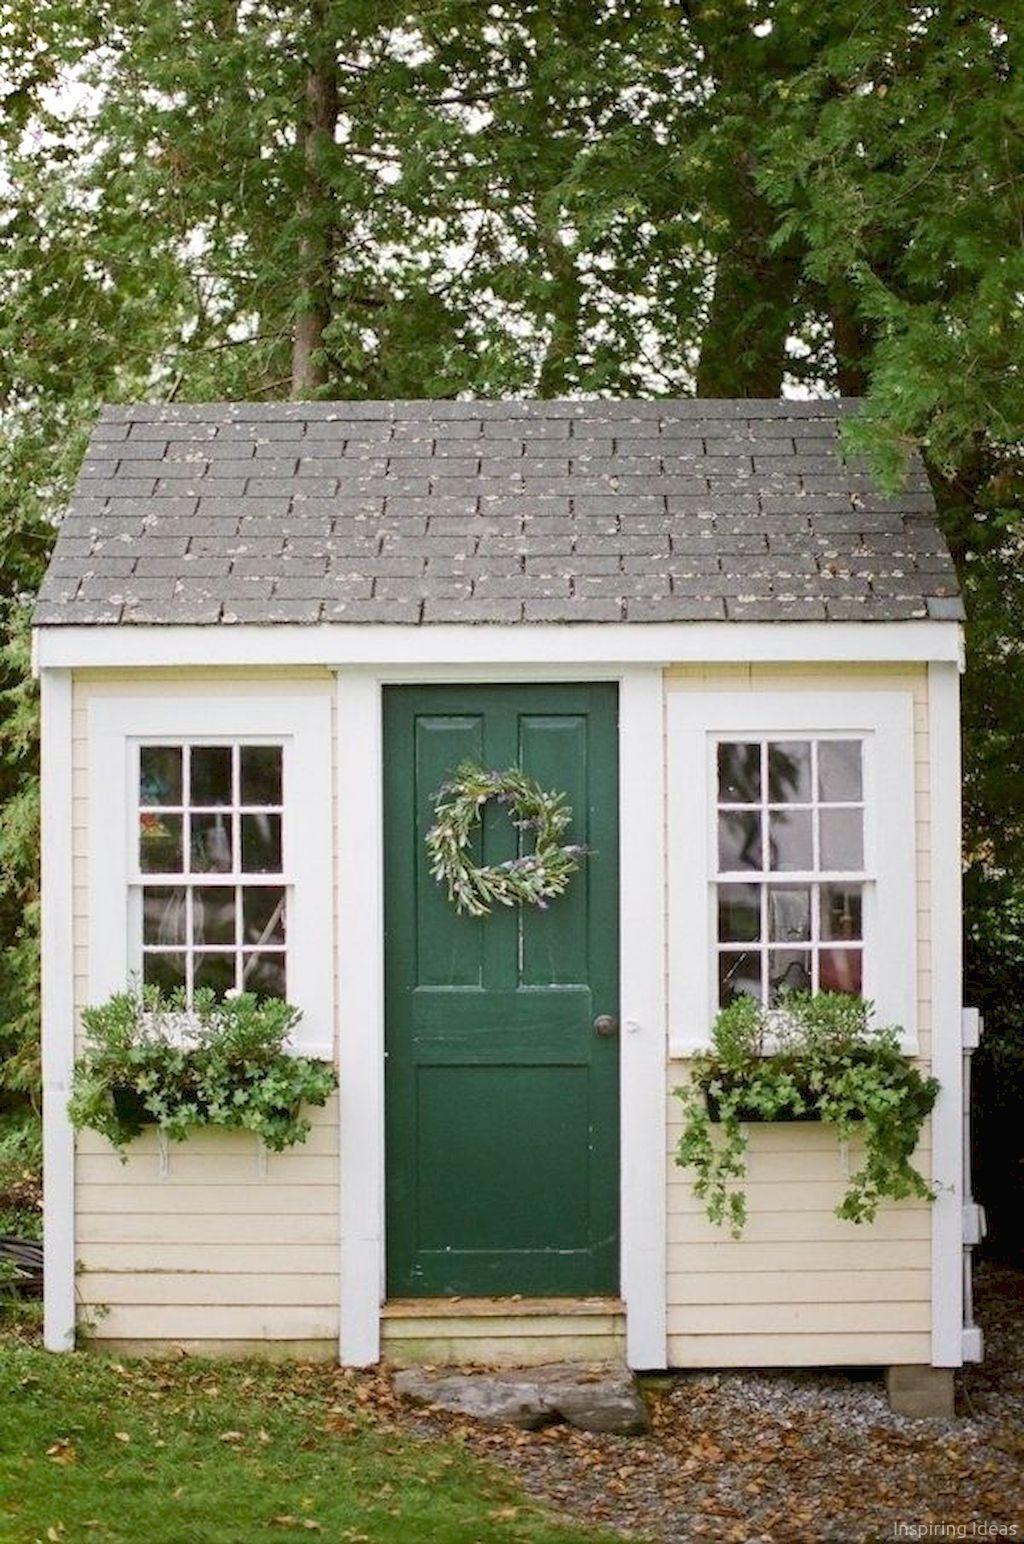 Cool 55 Nice Garden Shed Storage Ideas on a Budget https ...